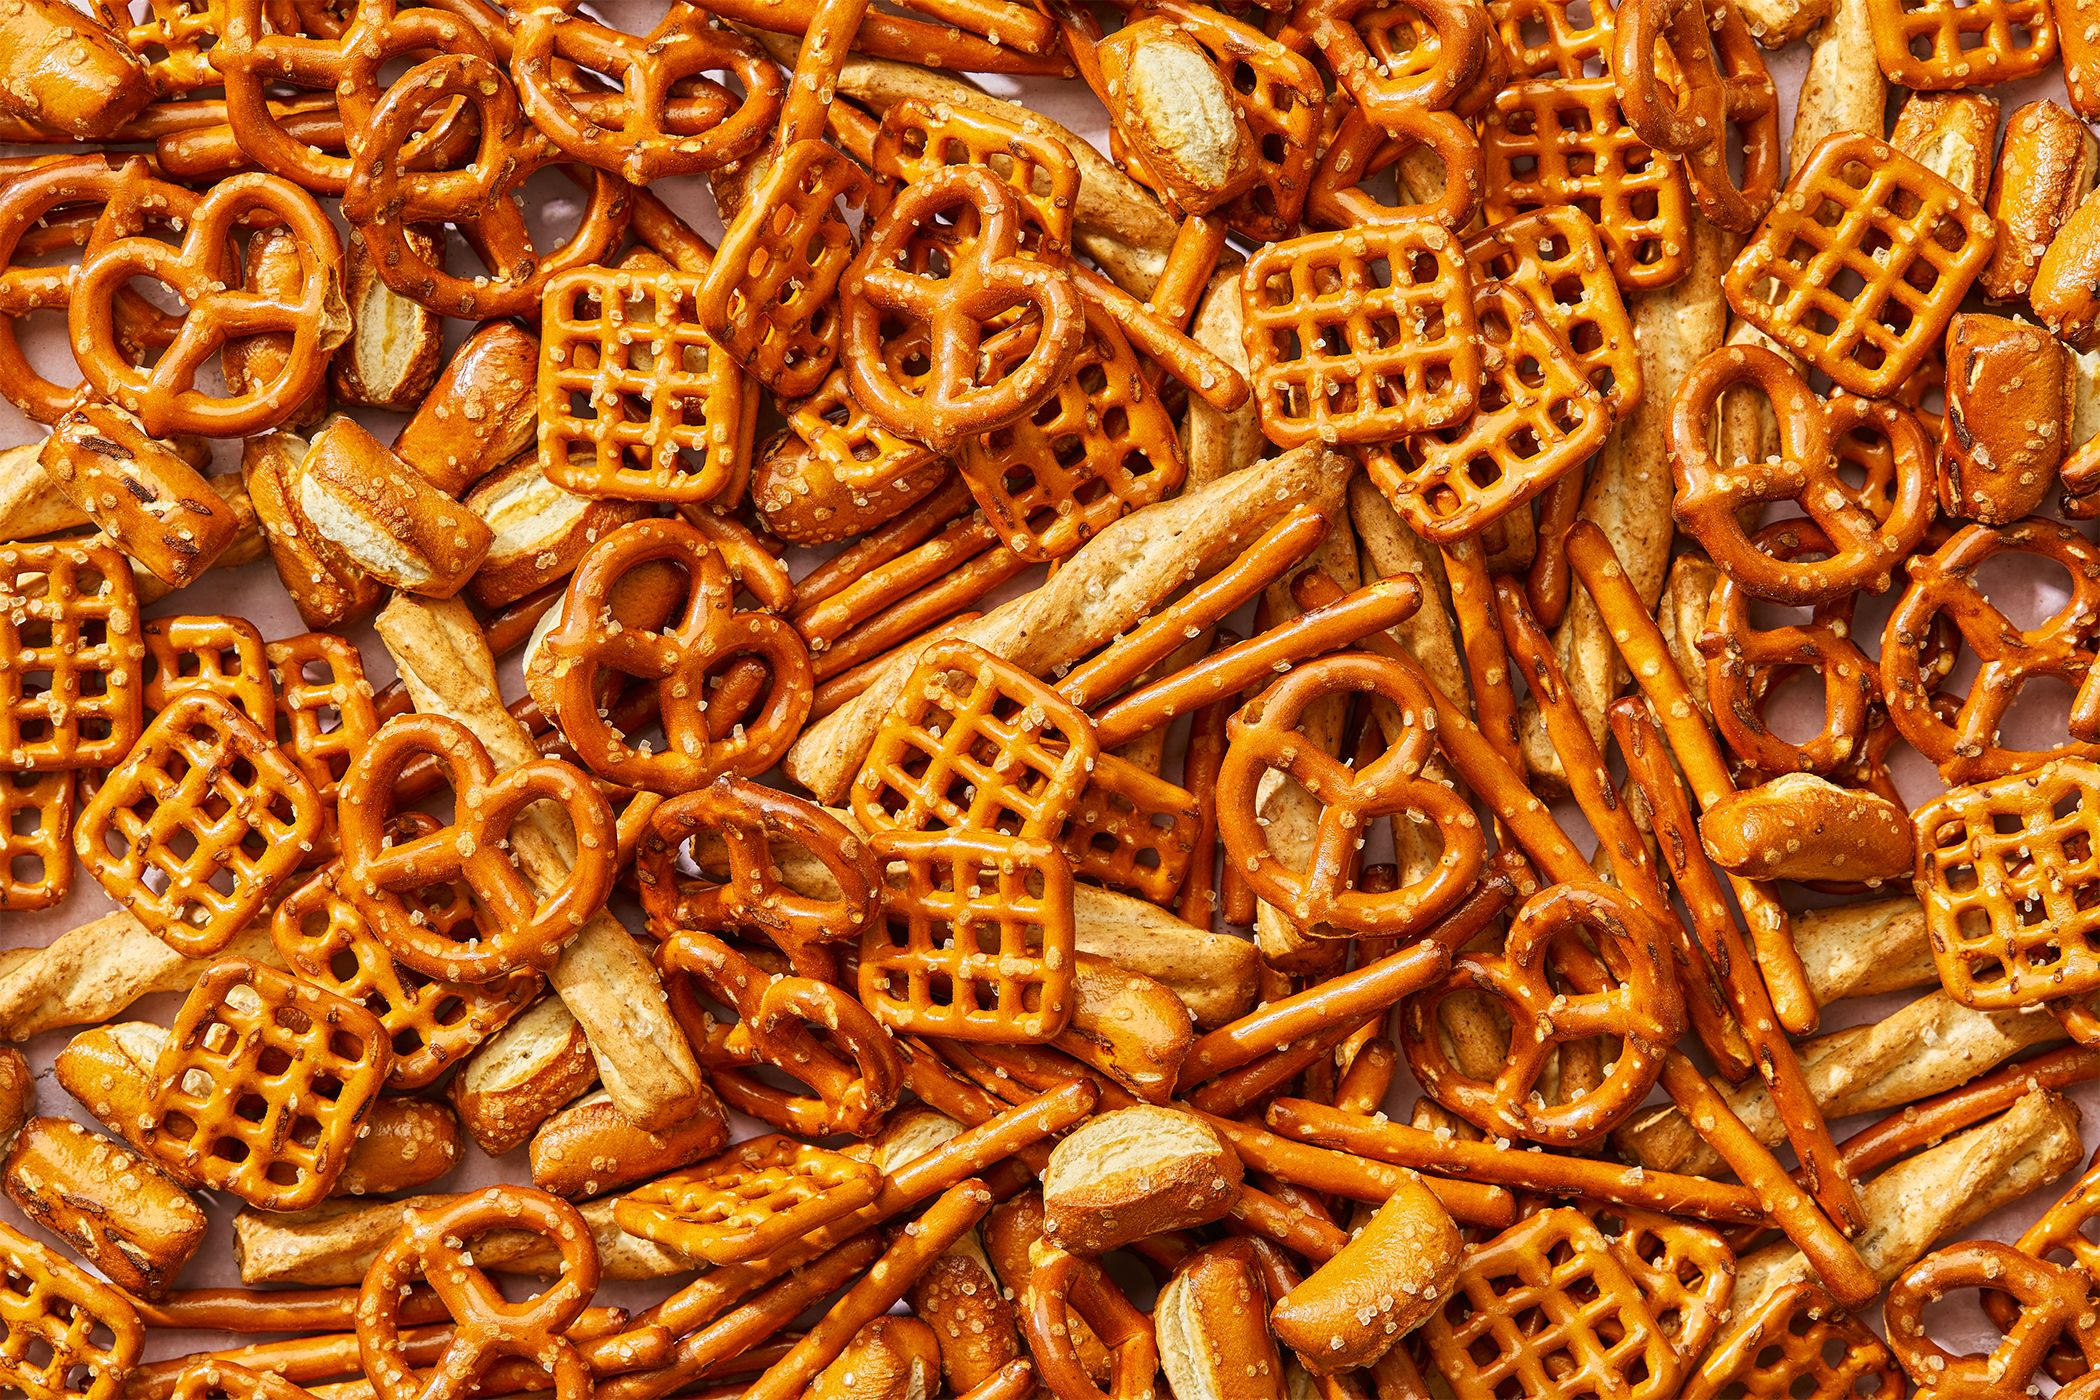 Are Pretzels Vegan Or Not? Nutritionists Settle The Debate